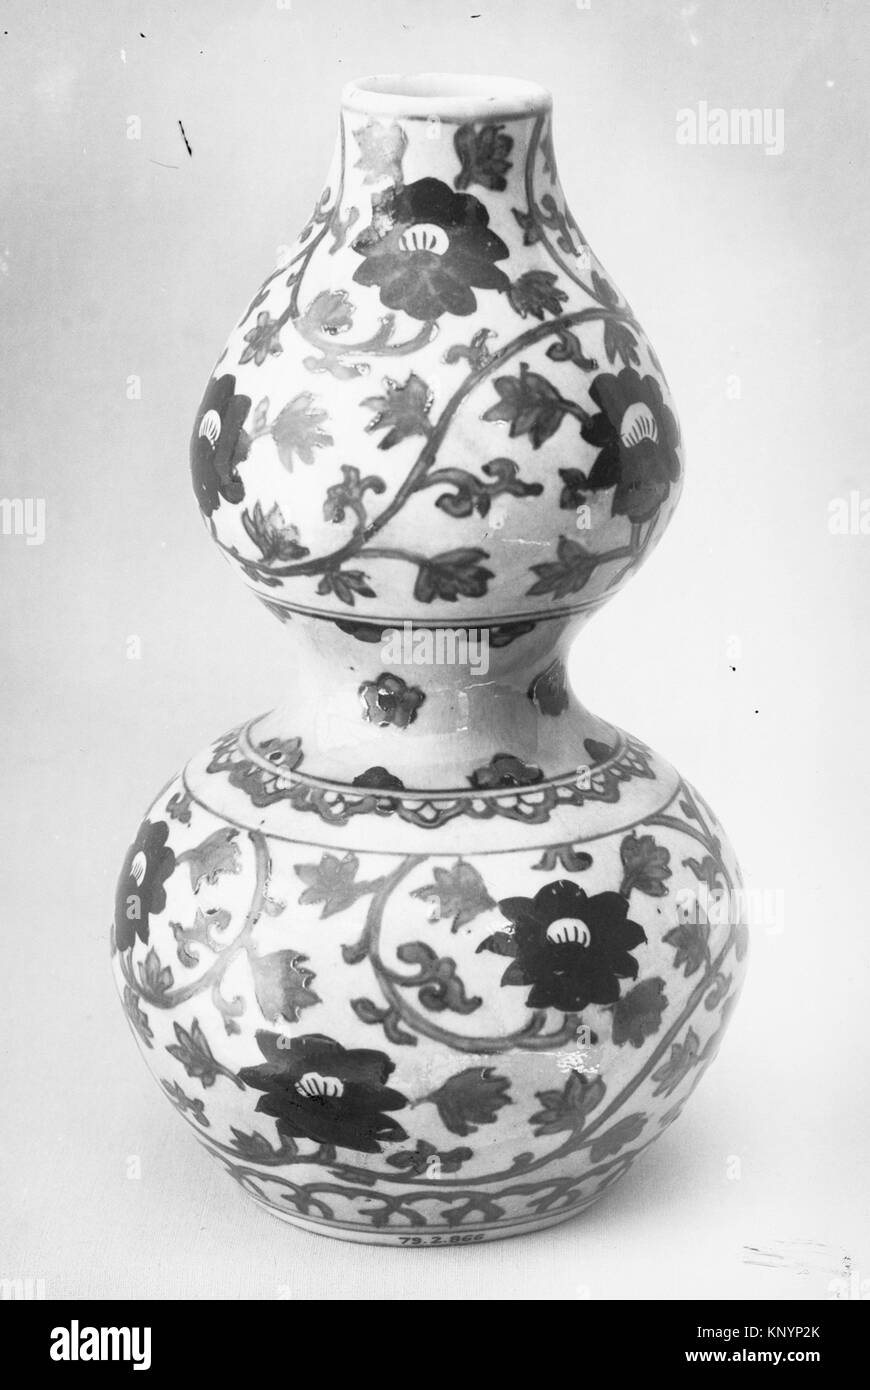 Ming dynasty vase stock photos ming dynasty vase stock images vase period ming dynasty 1368 1644 jiajing mark and period reviewsmspy